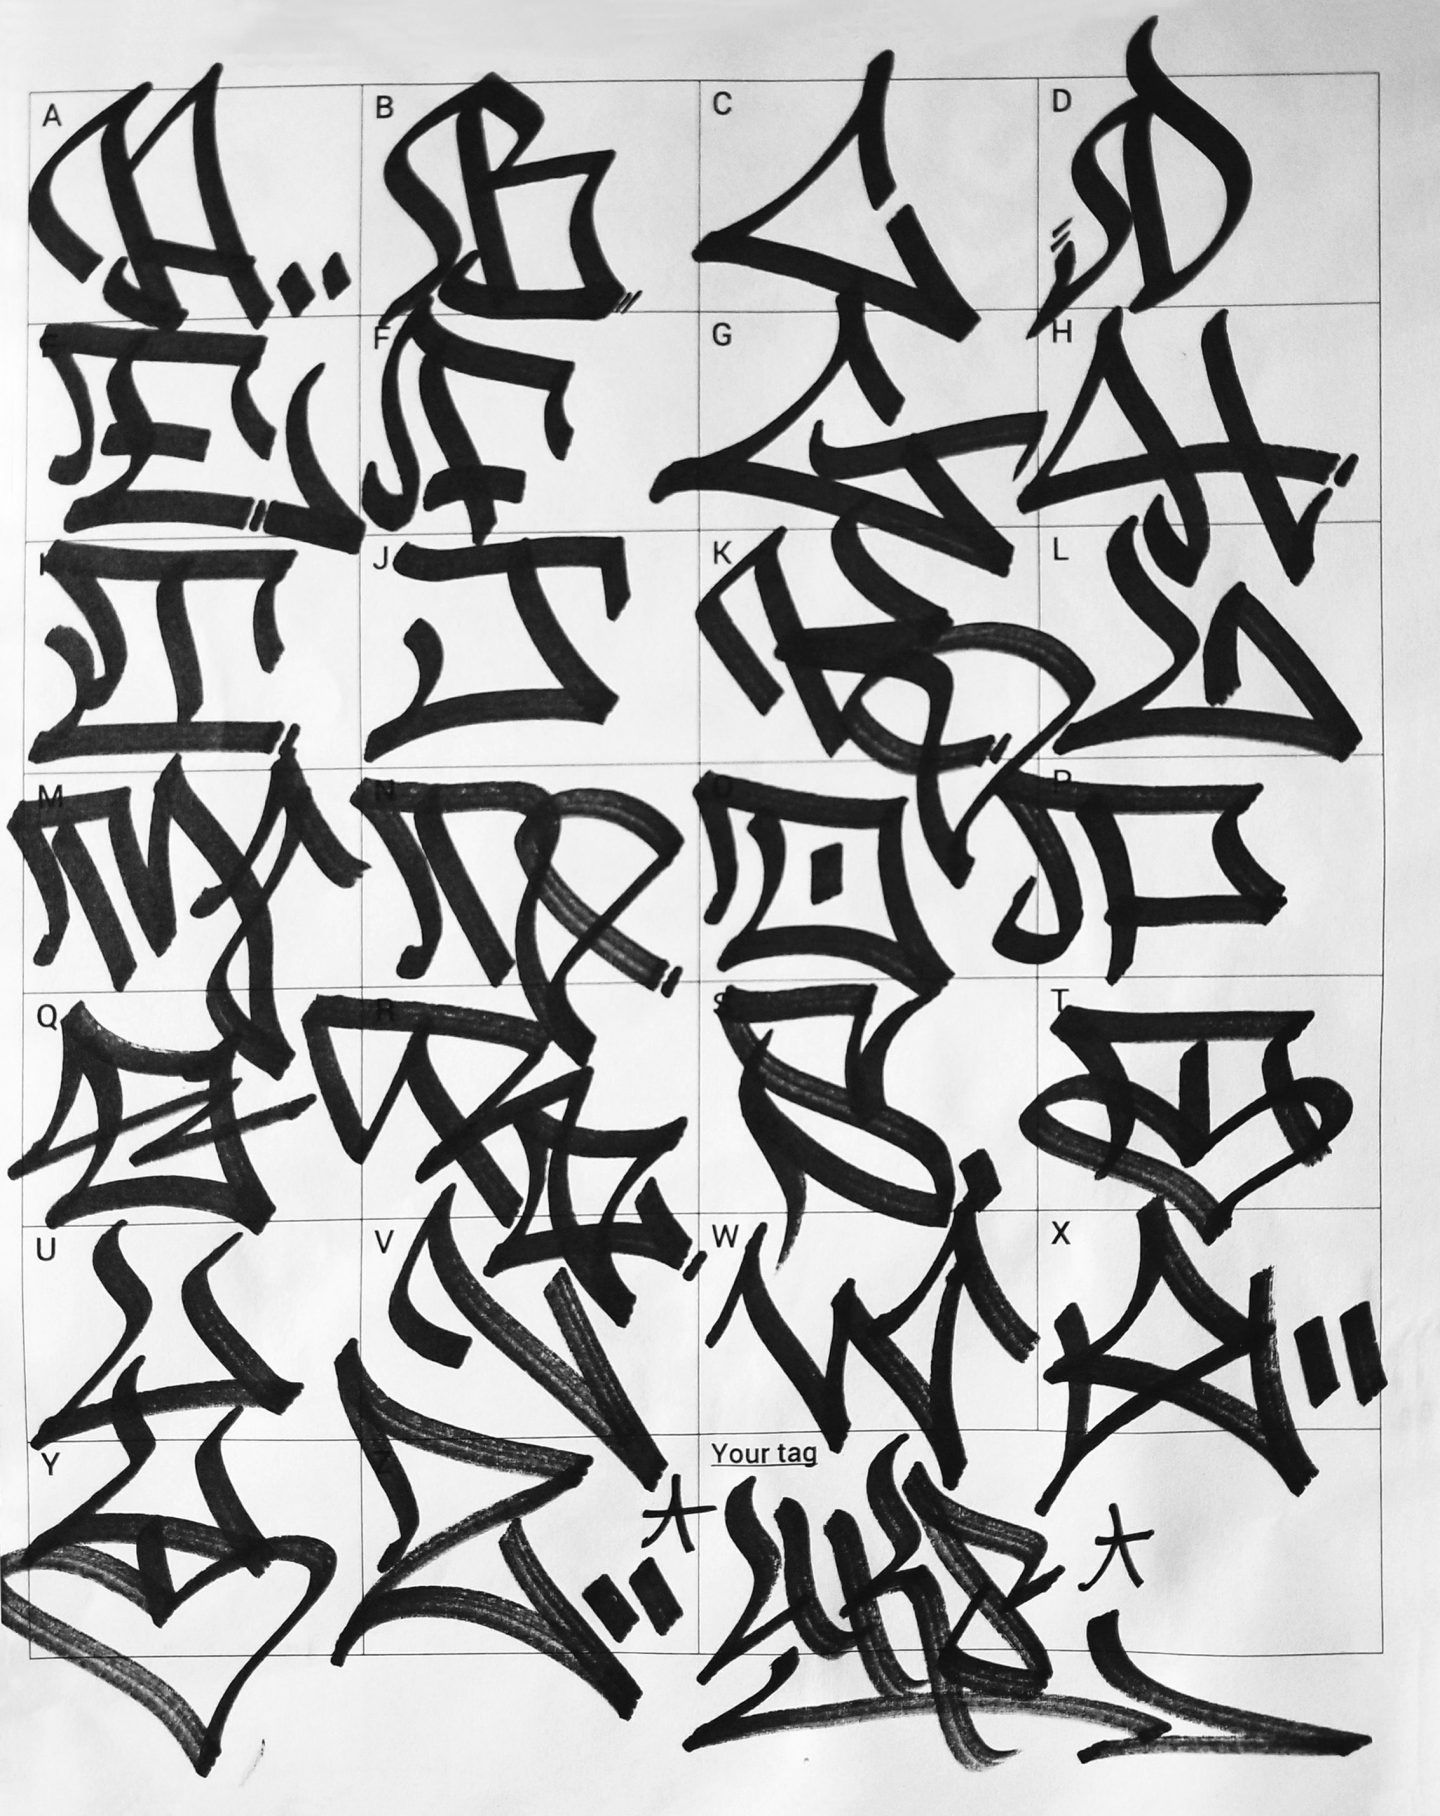 Graffiti Letters 61 Graffiti Artists Share Their Styles Letras